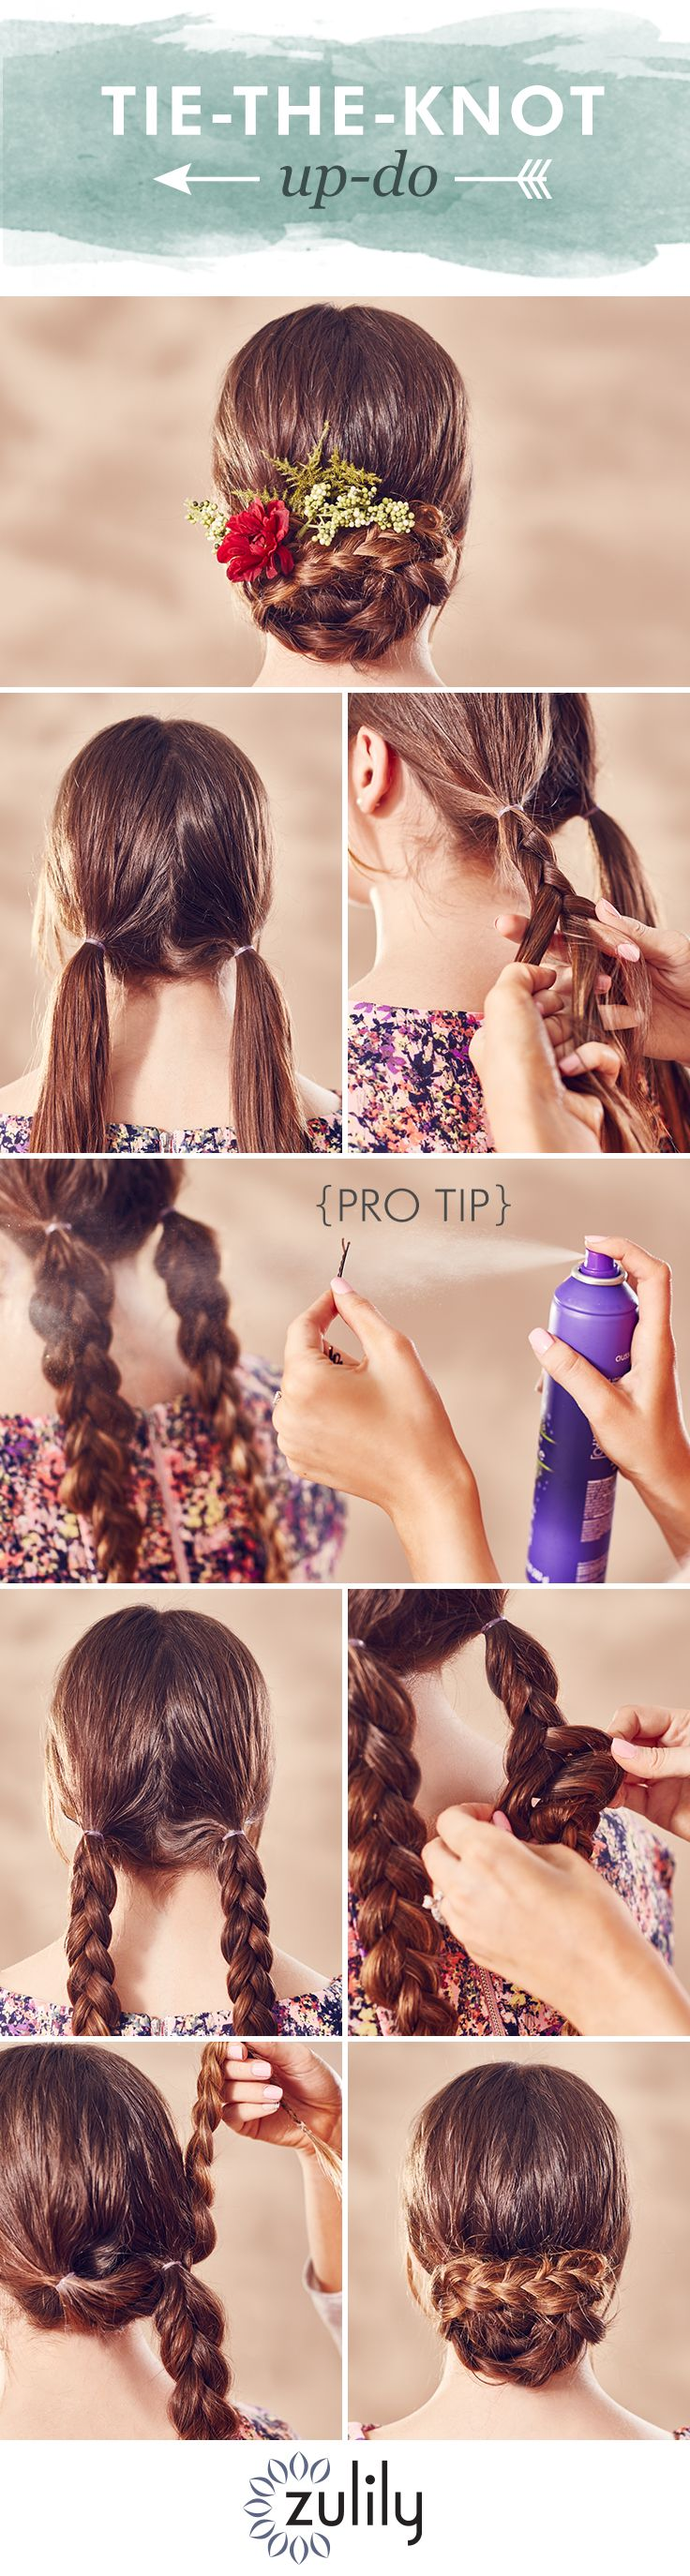 Hair howto tie the knot with this beautiful braided style summer